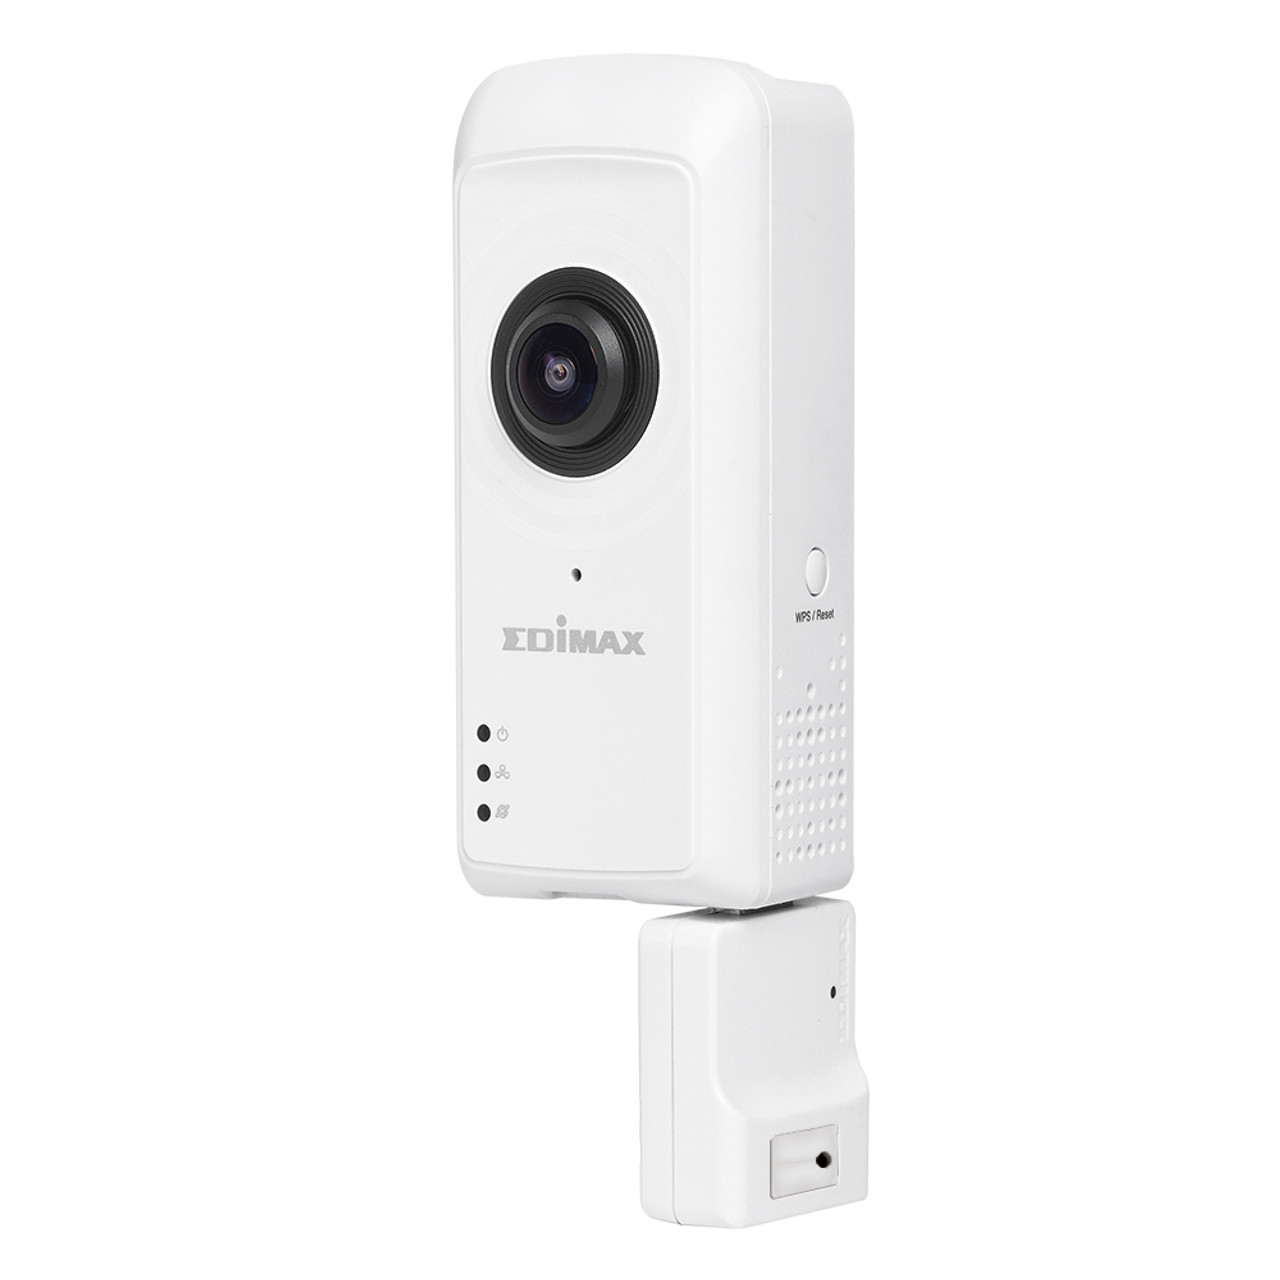 EDIMAX IC5170SC Panoramic Security Camera Smart Home Connect Kit